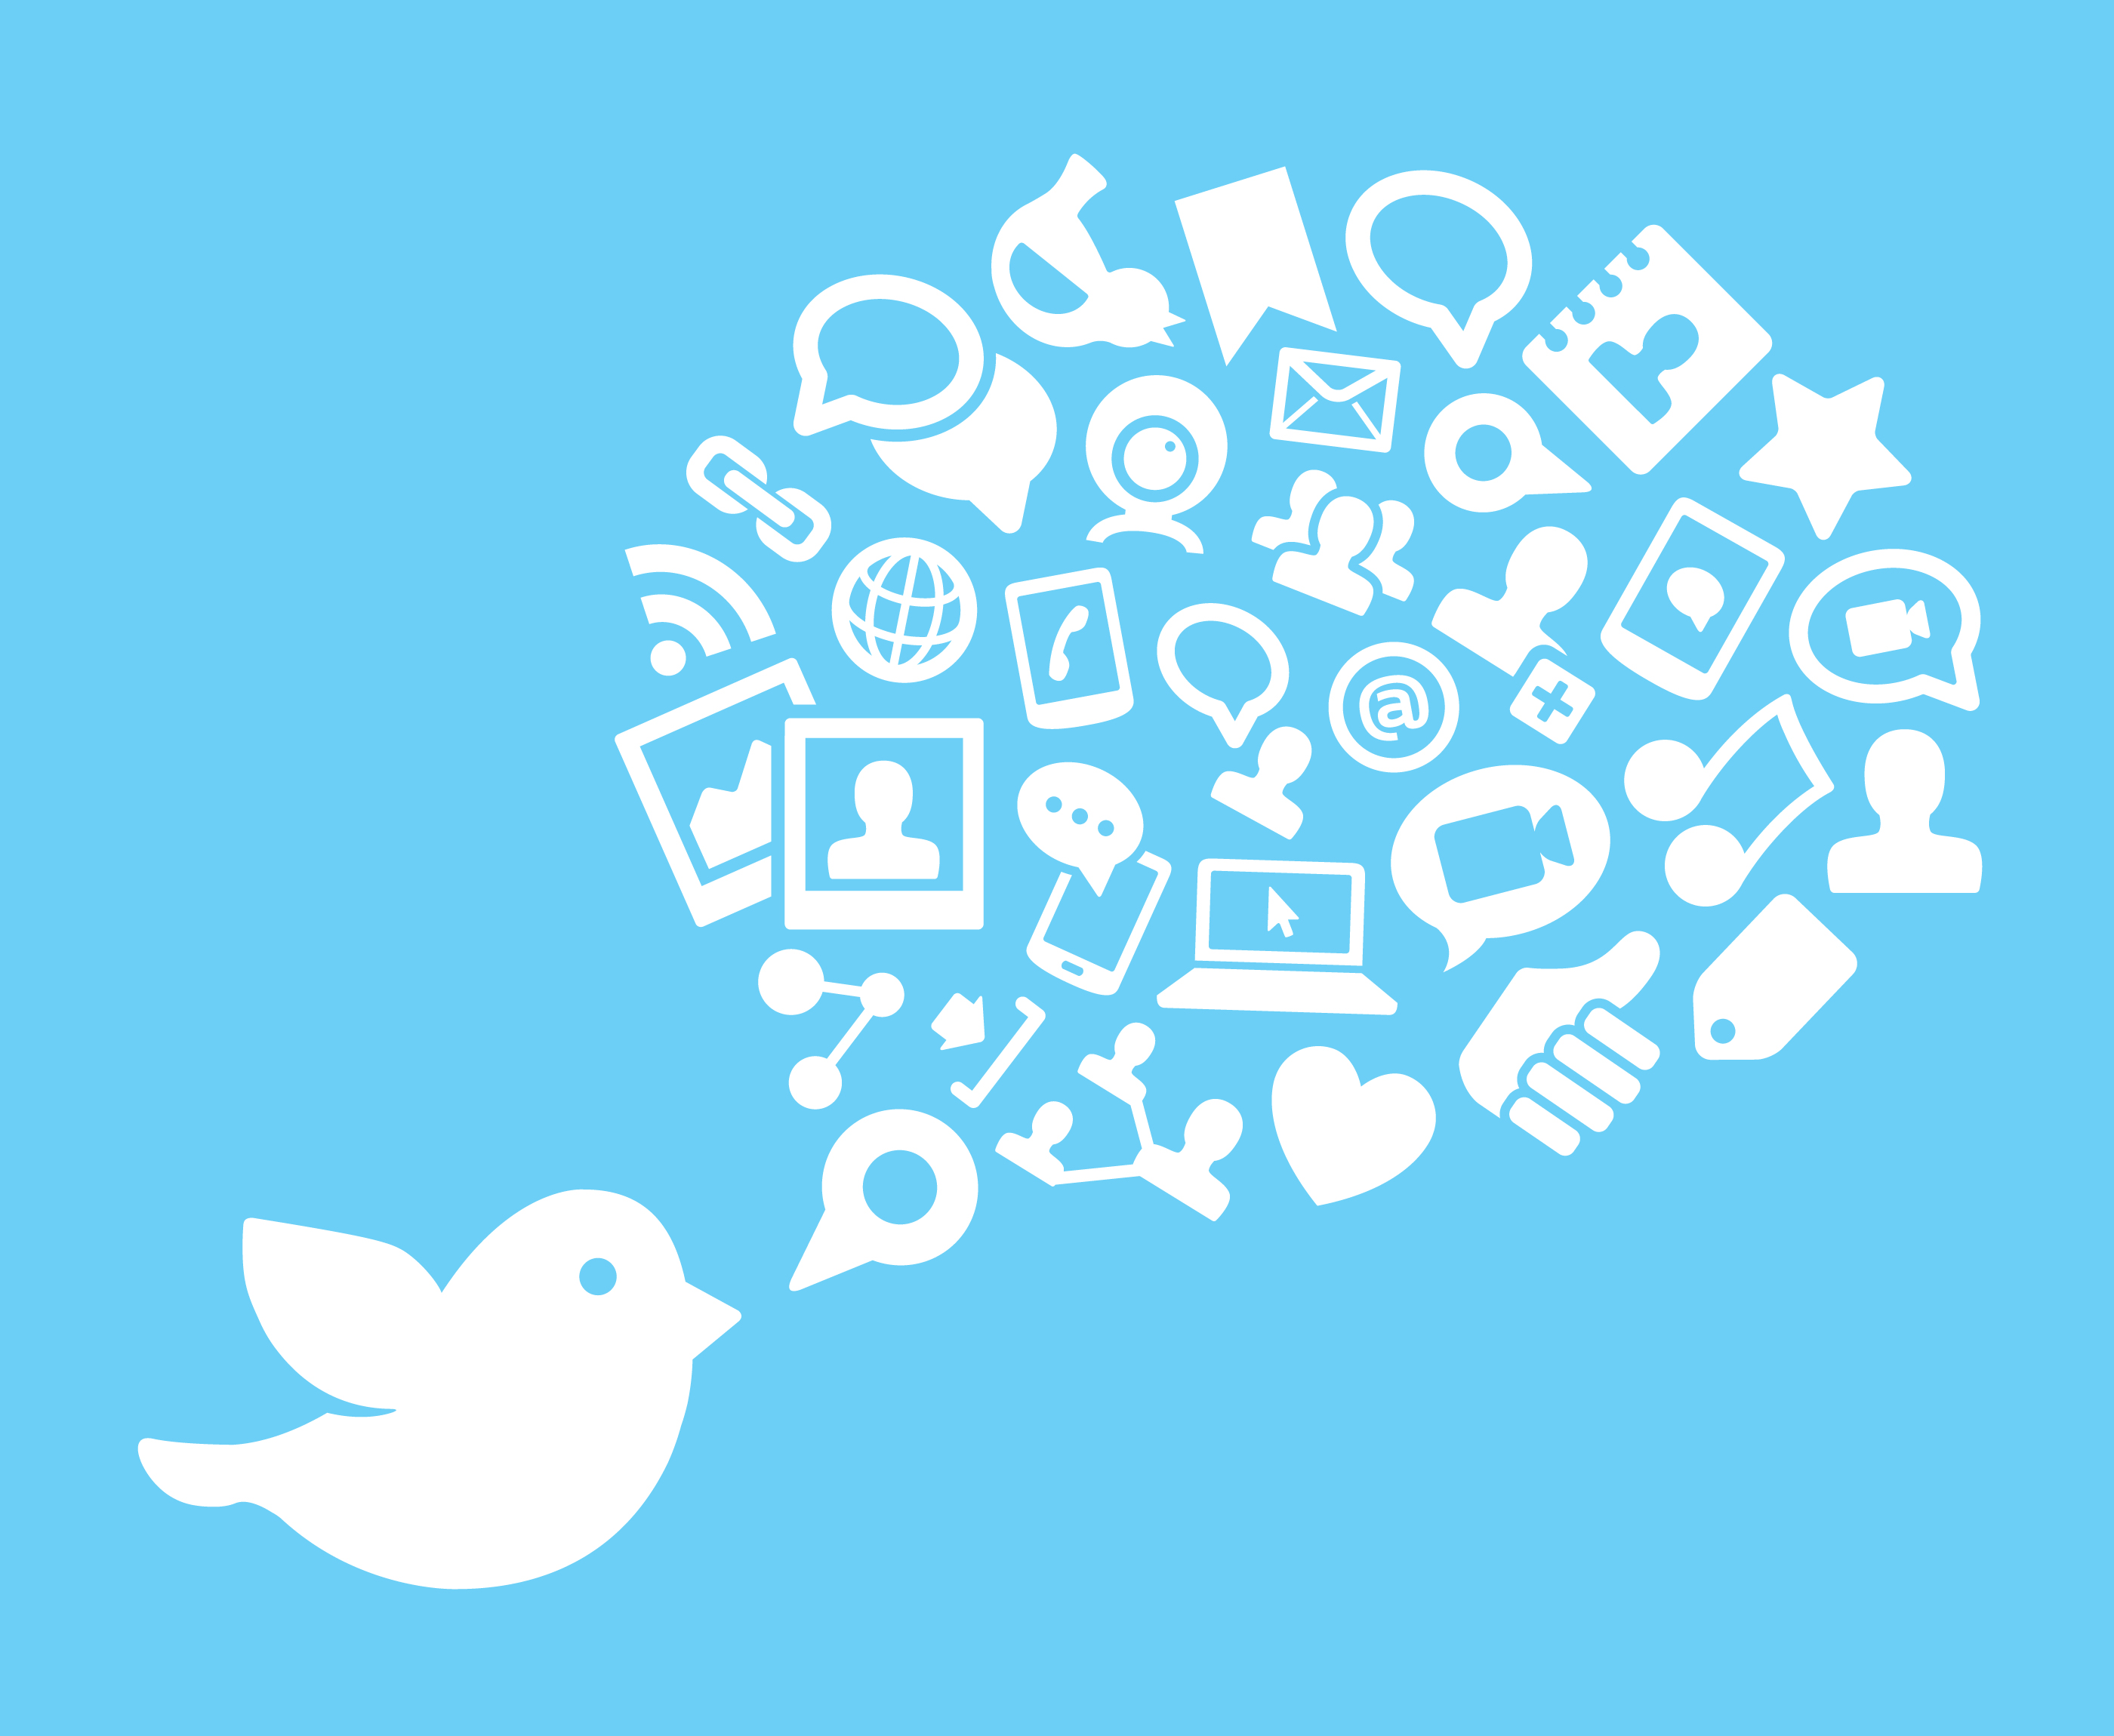 Twitter Introduces New Customer Service Display Options and Tools